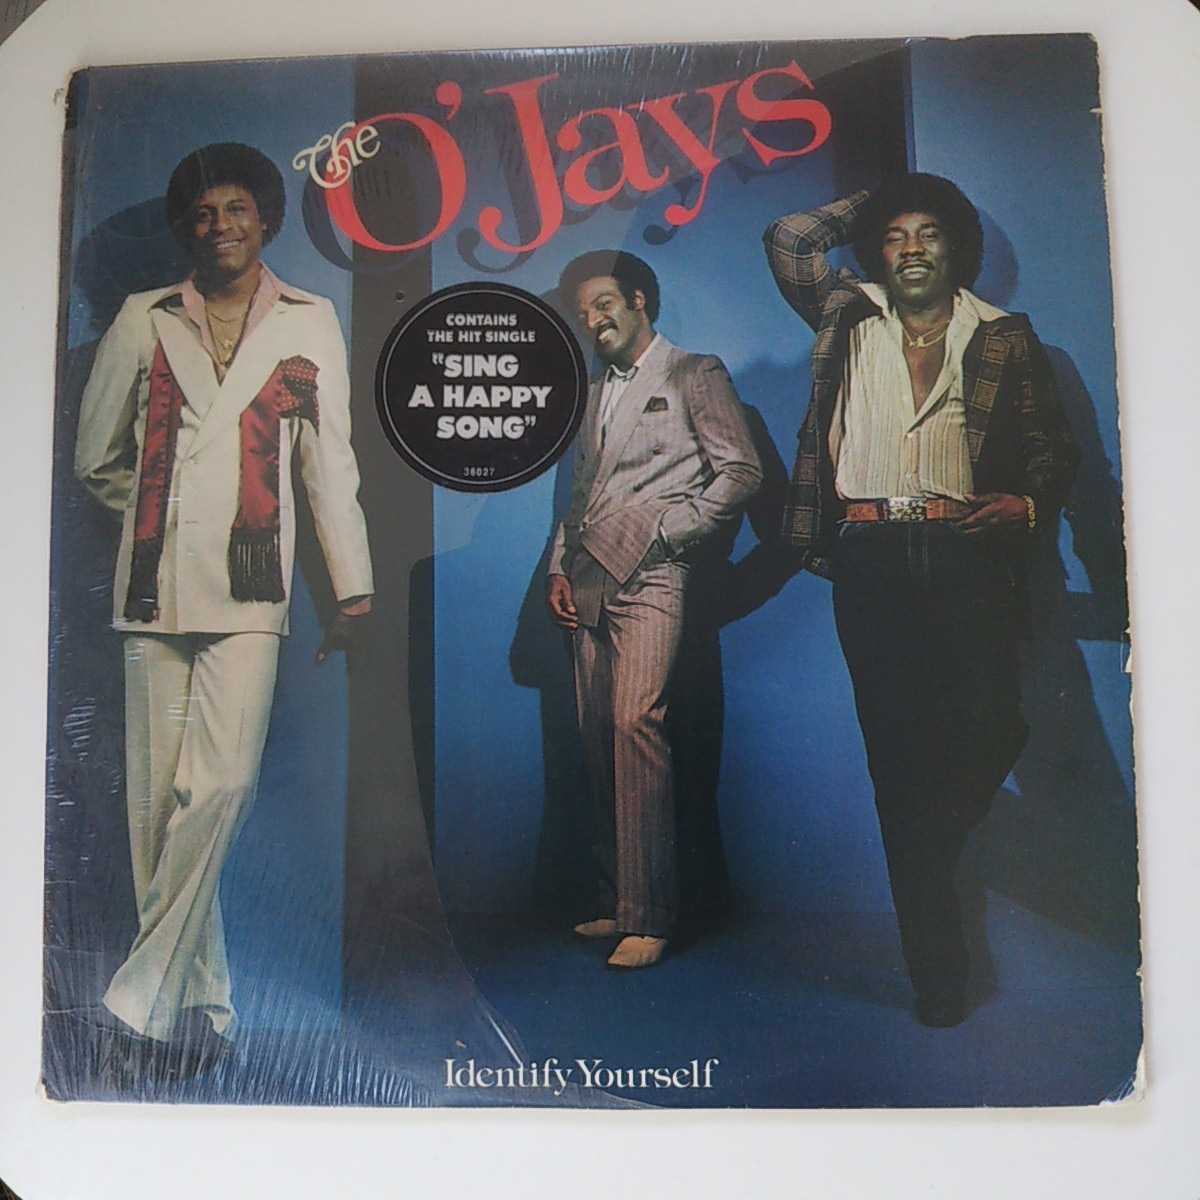 THE O'JAYS / IDENTIFY YOURSELF /LP/SING A HAPPY SONG/GAMBLE & HUFF/DISCO/フィリー/フリーソウル _画像1